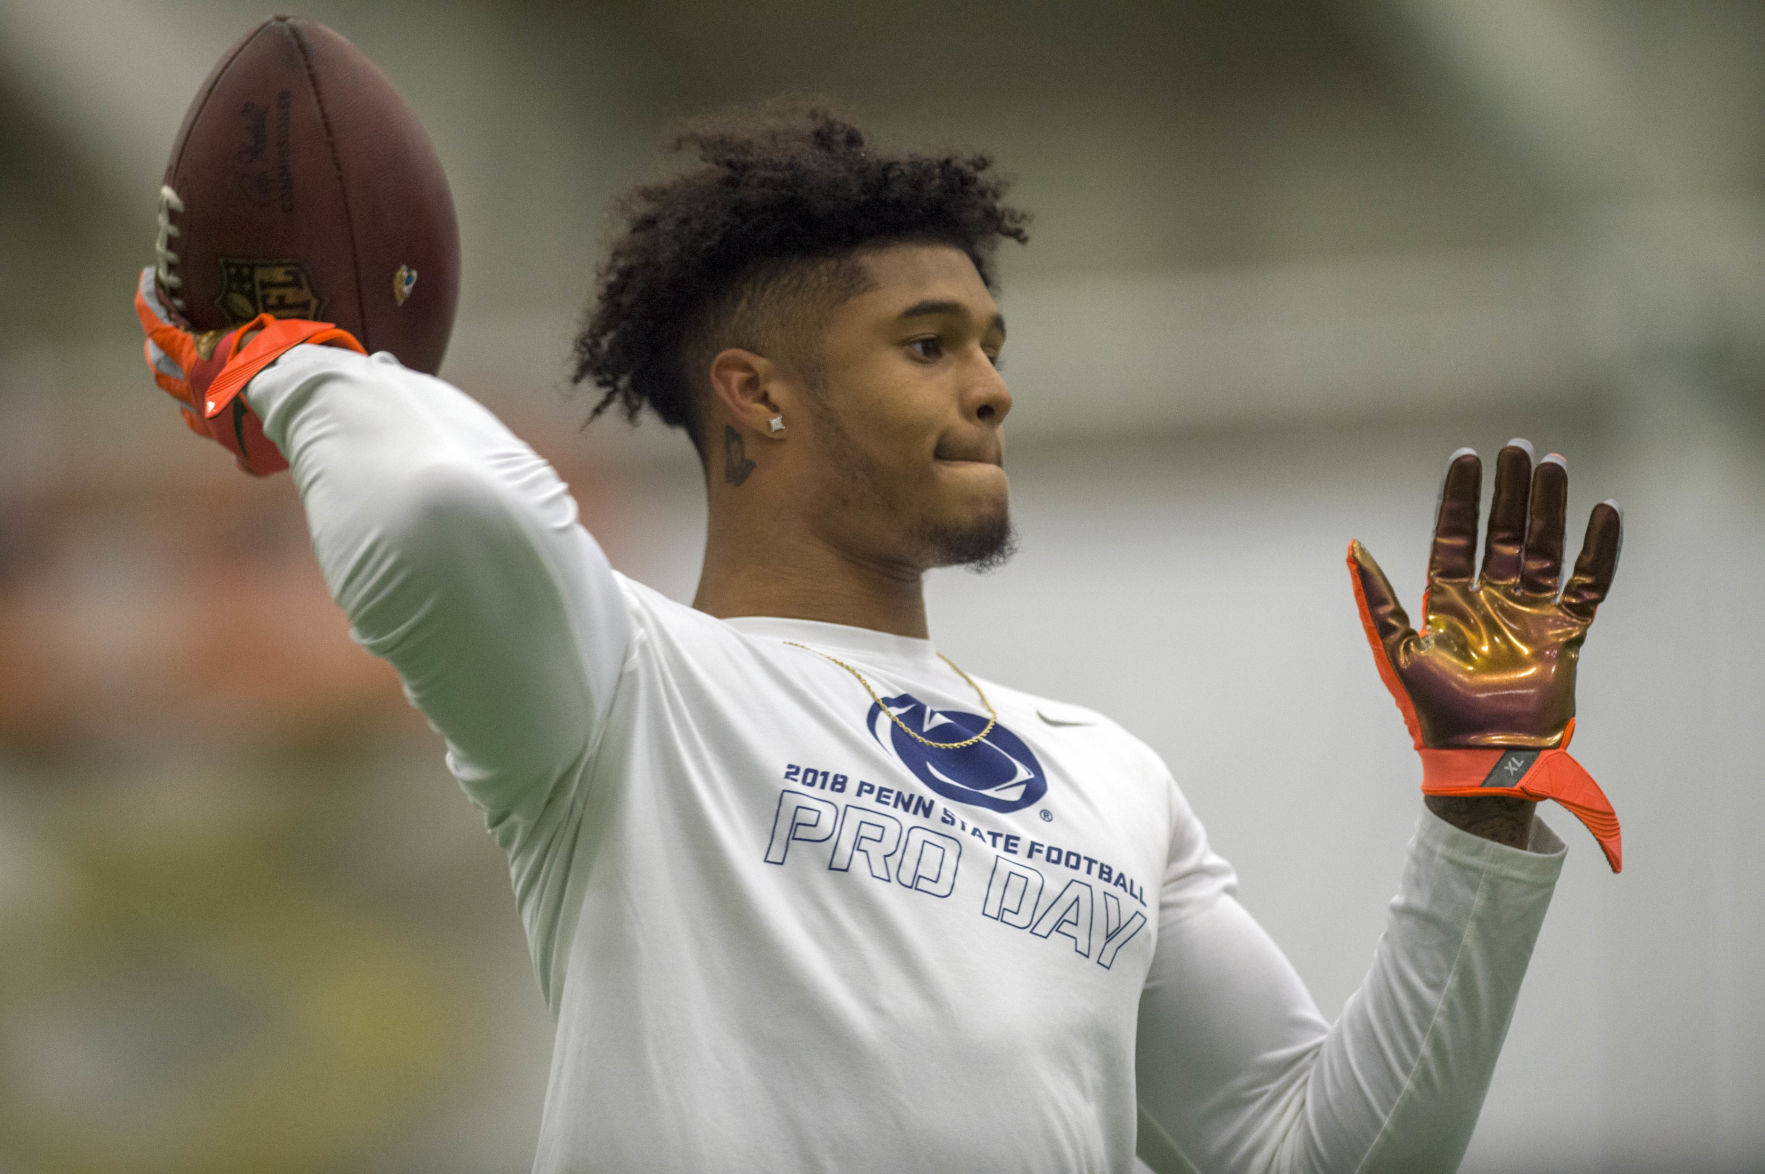 2018 NFL Draft: Marcus Allen drafted by the Pittsburgh Steelers in fifth round